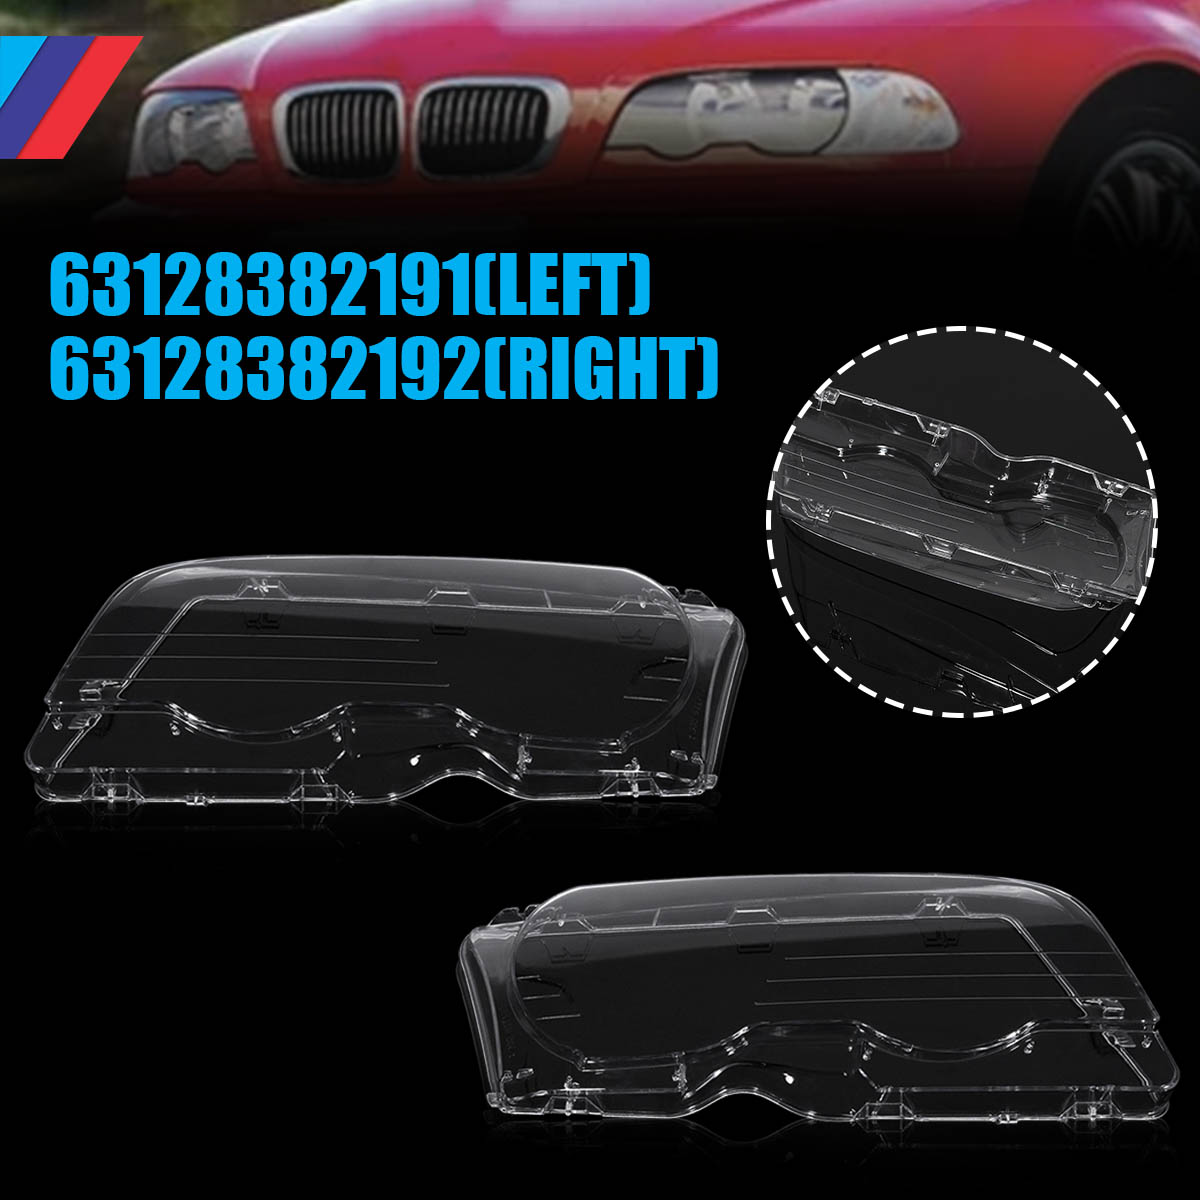 1 Pair Car Headlight Clear Lens Headlamp Clear Cover Coupe Convertible For BMW E46 2DR 1999-2003 M3 2001-2006 1 pair car headlight clear lenses lens clear cover left